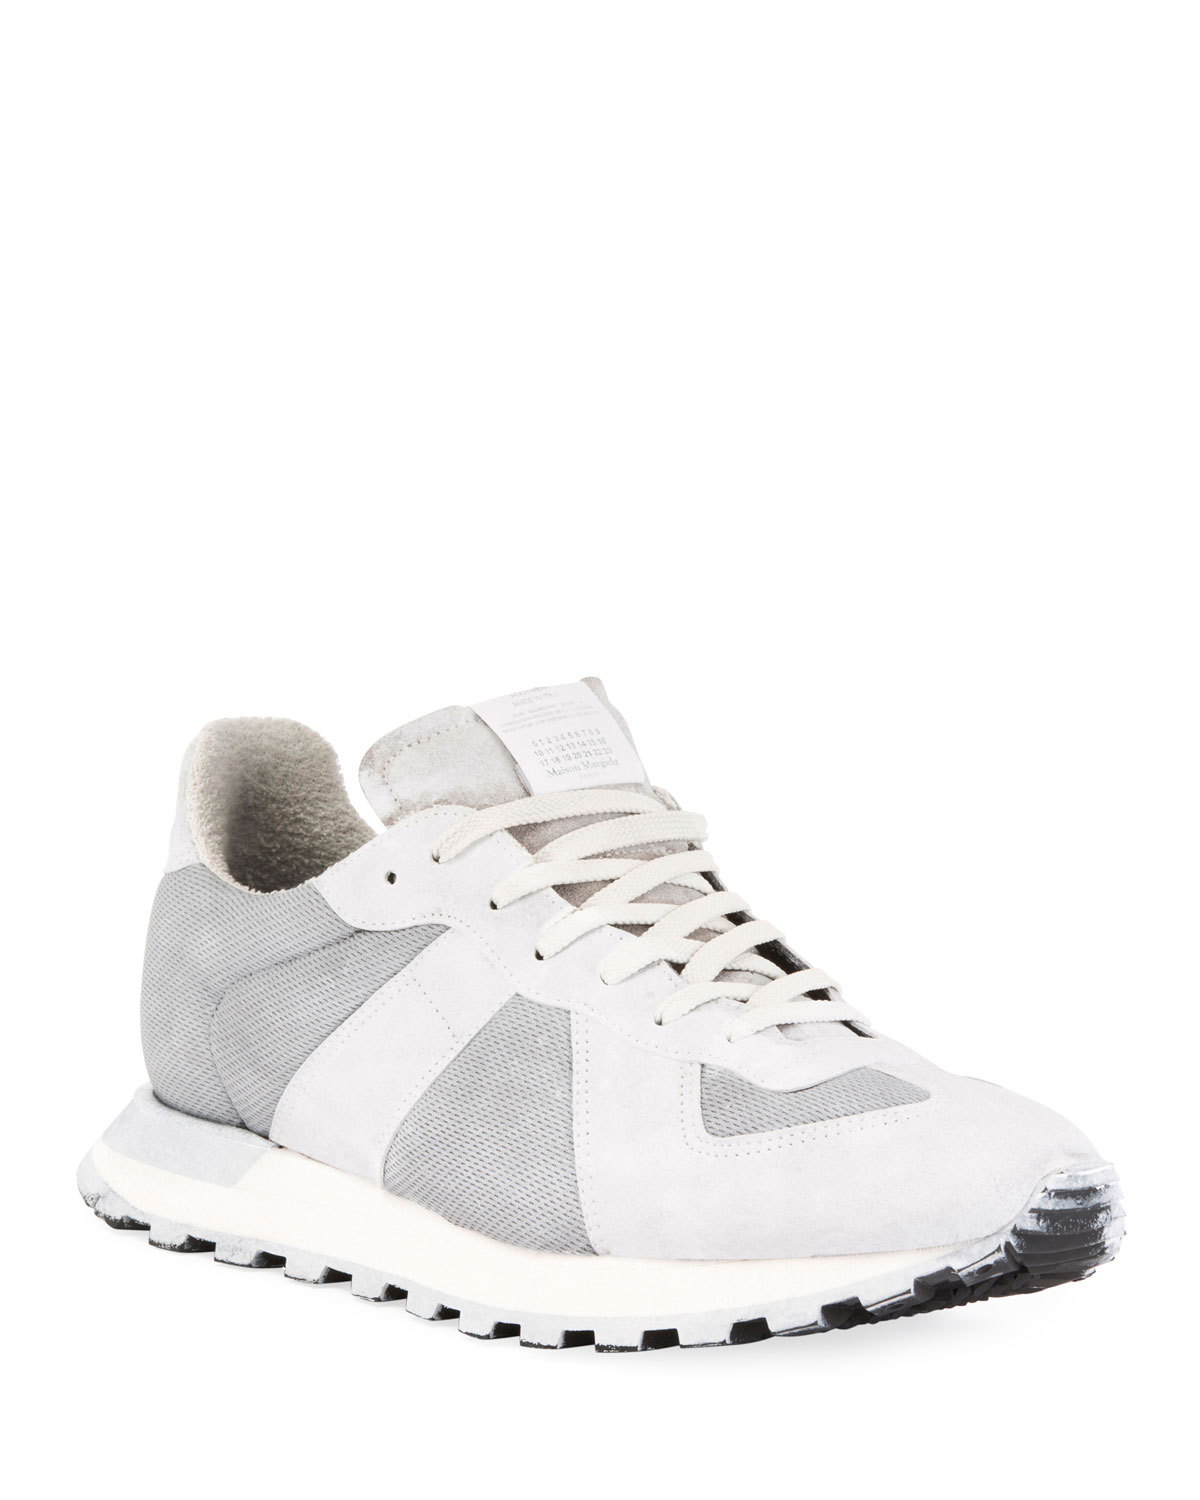 Maison Margiela Men's Replica Sneakers Runner Leather & Suede Sneakers Replica 68132b